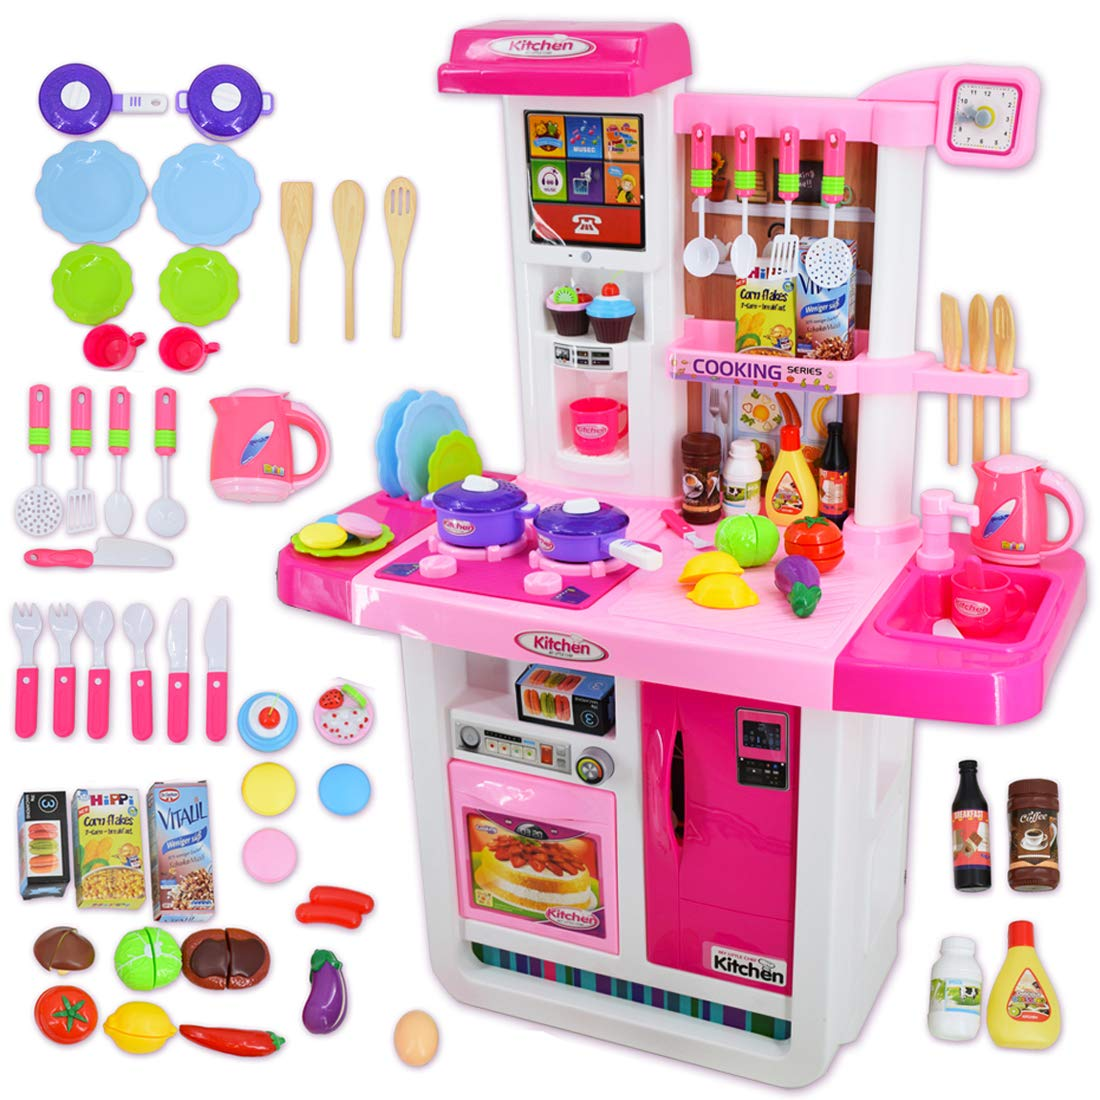 deAO My Little Chef Kitchen Playset with Sounds, Touchscreen Panel and Water Features - More Than 40 Accessories Included